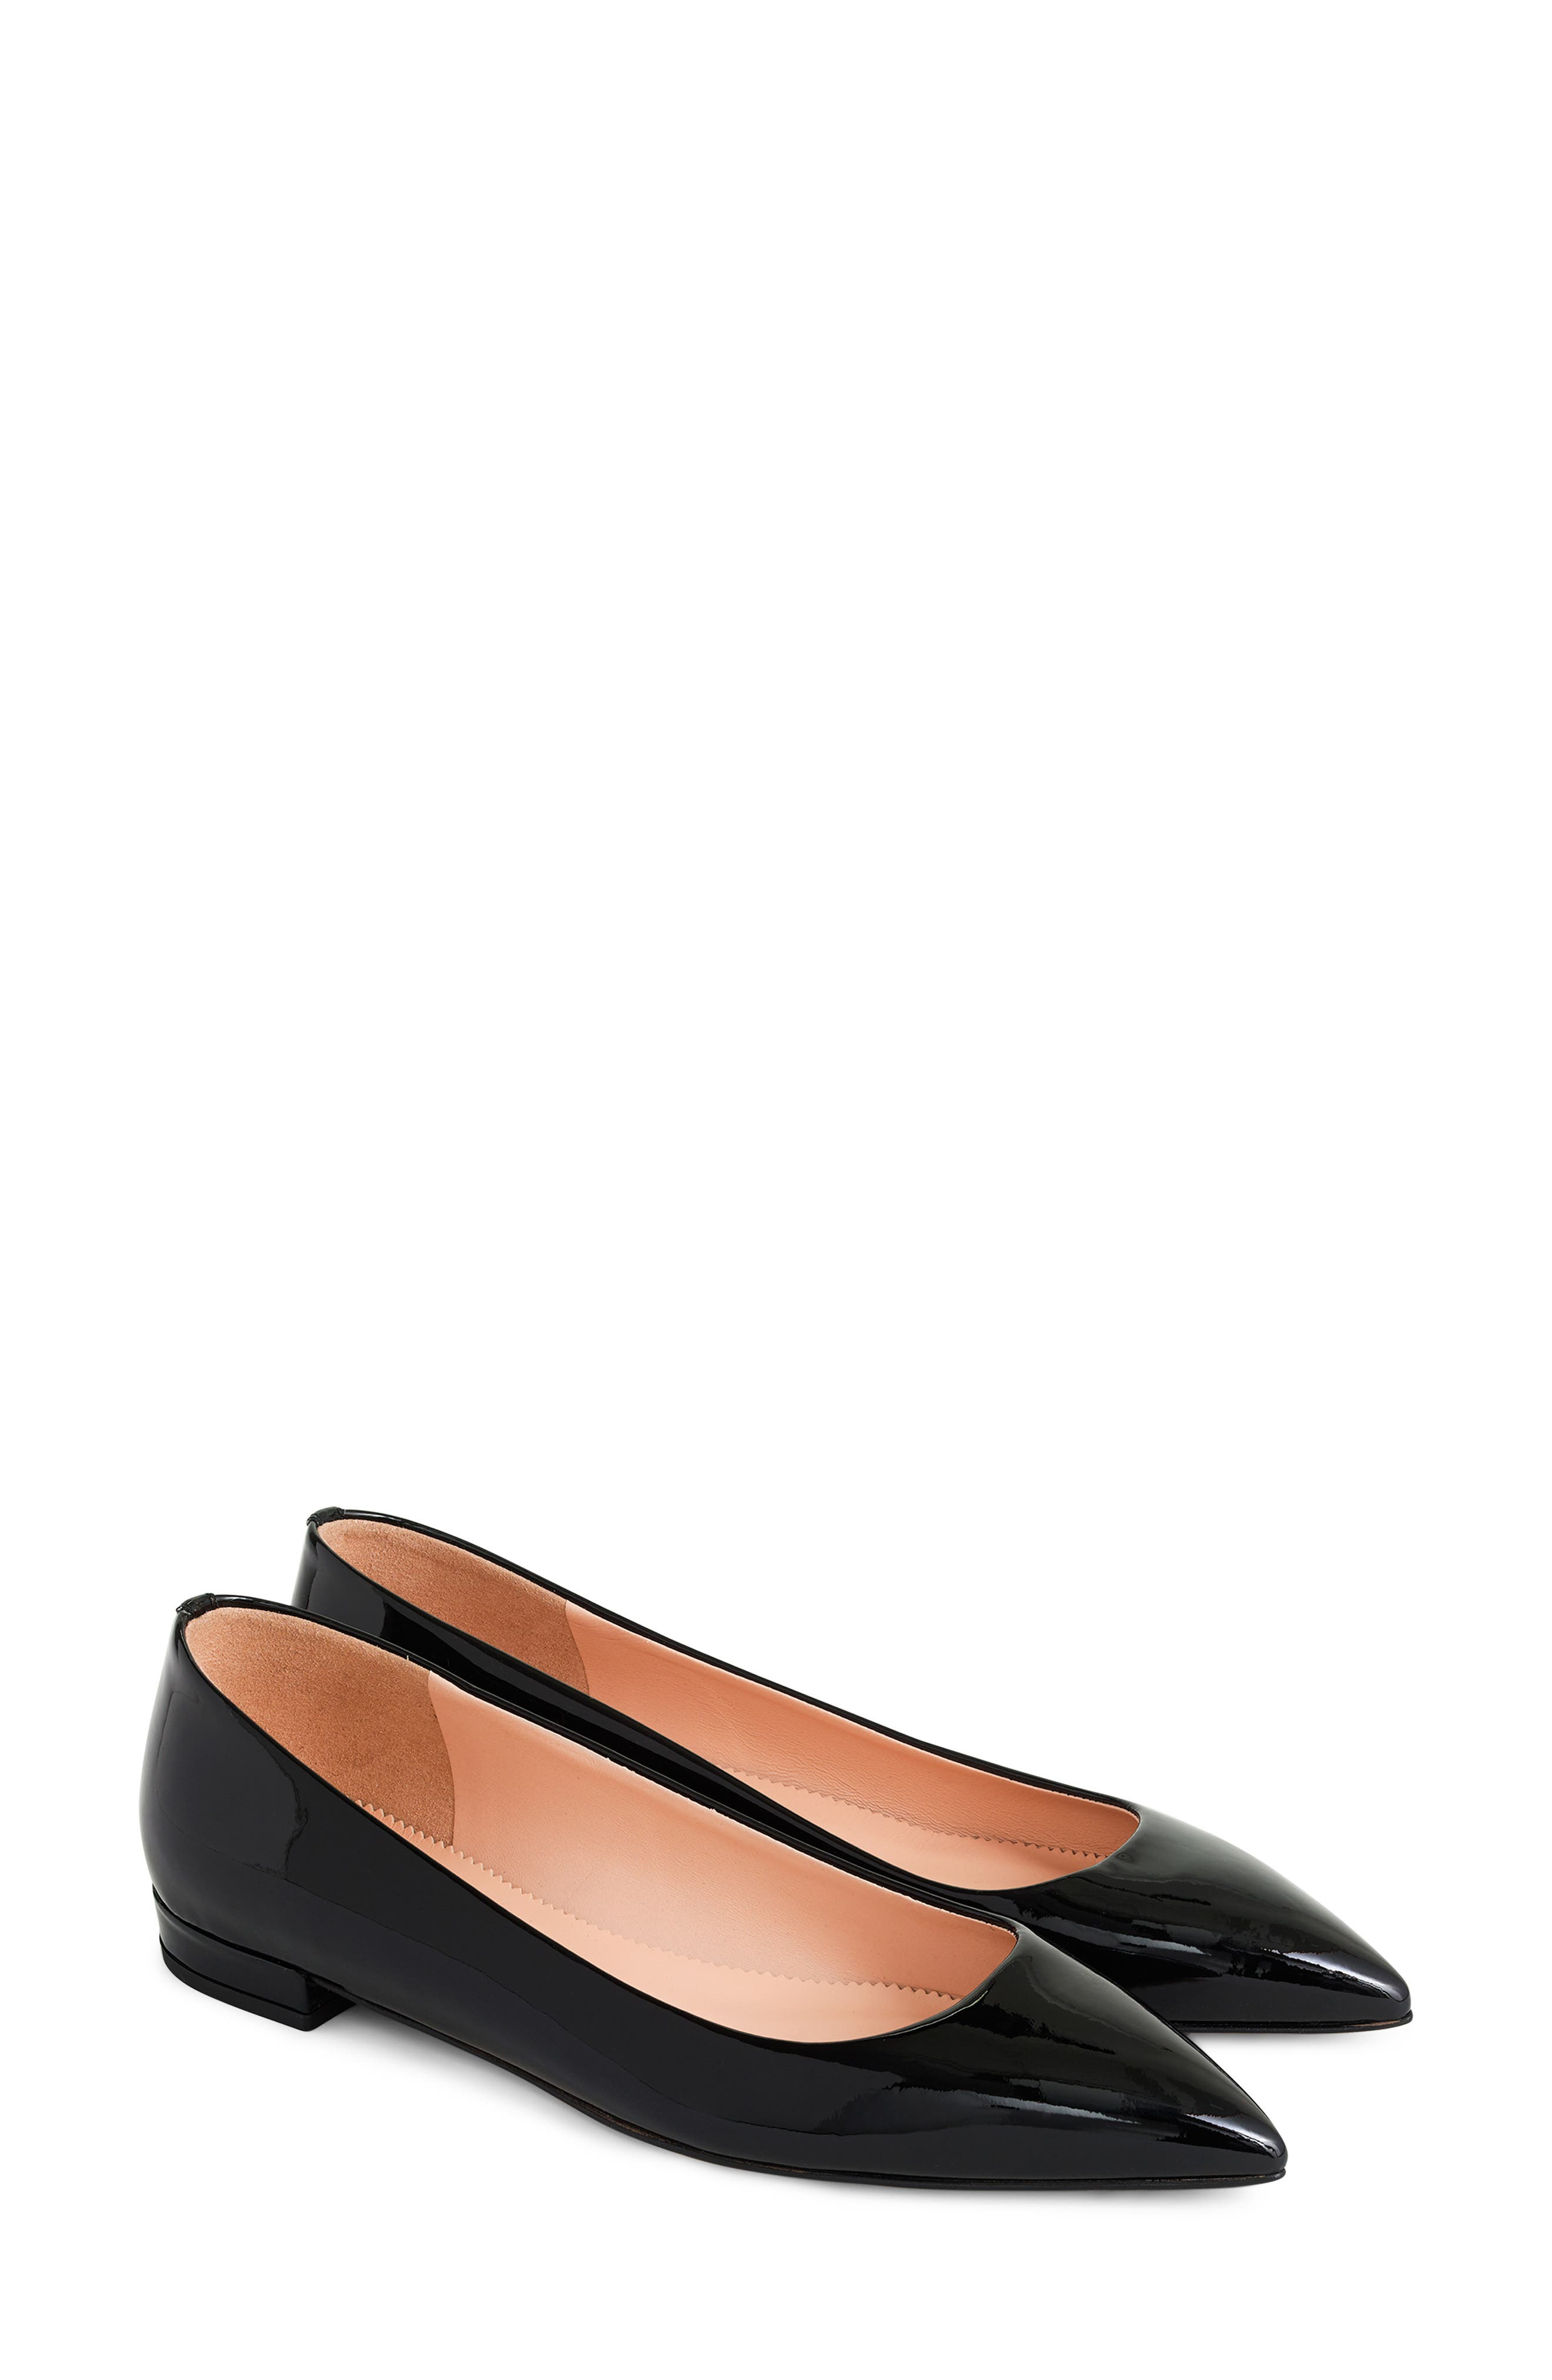 J.CREW Pointed Toe Flat, Main, color, BLACK PATENT LEATHER